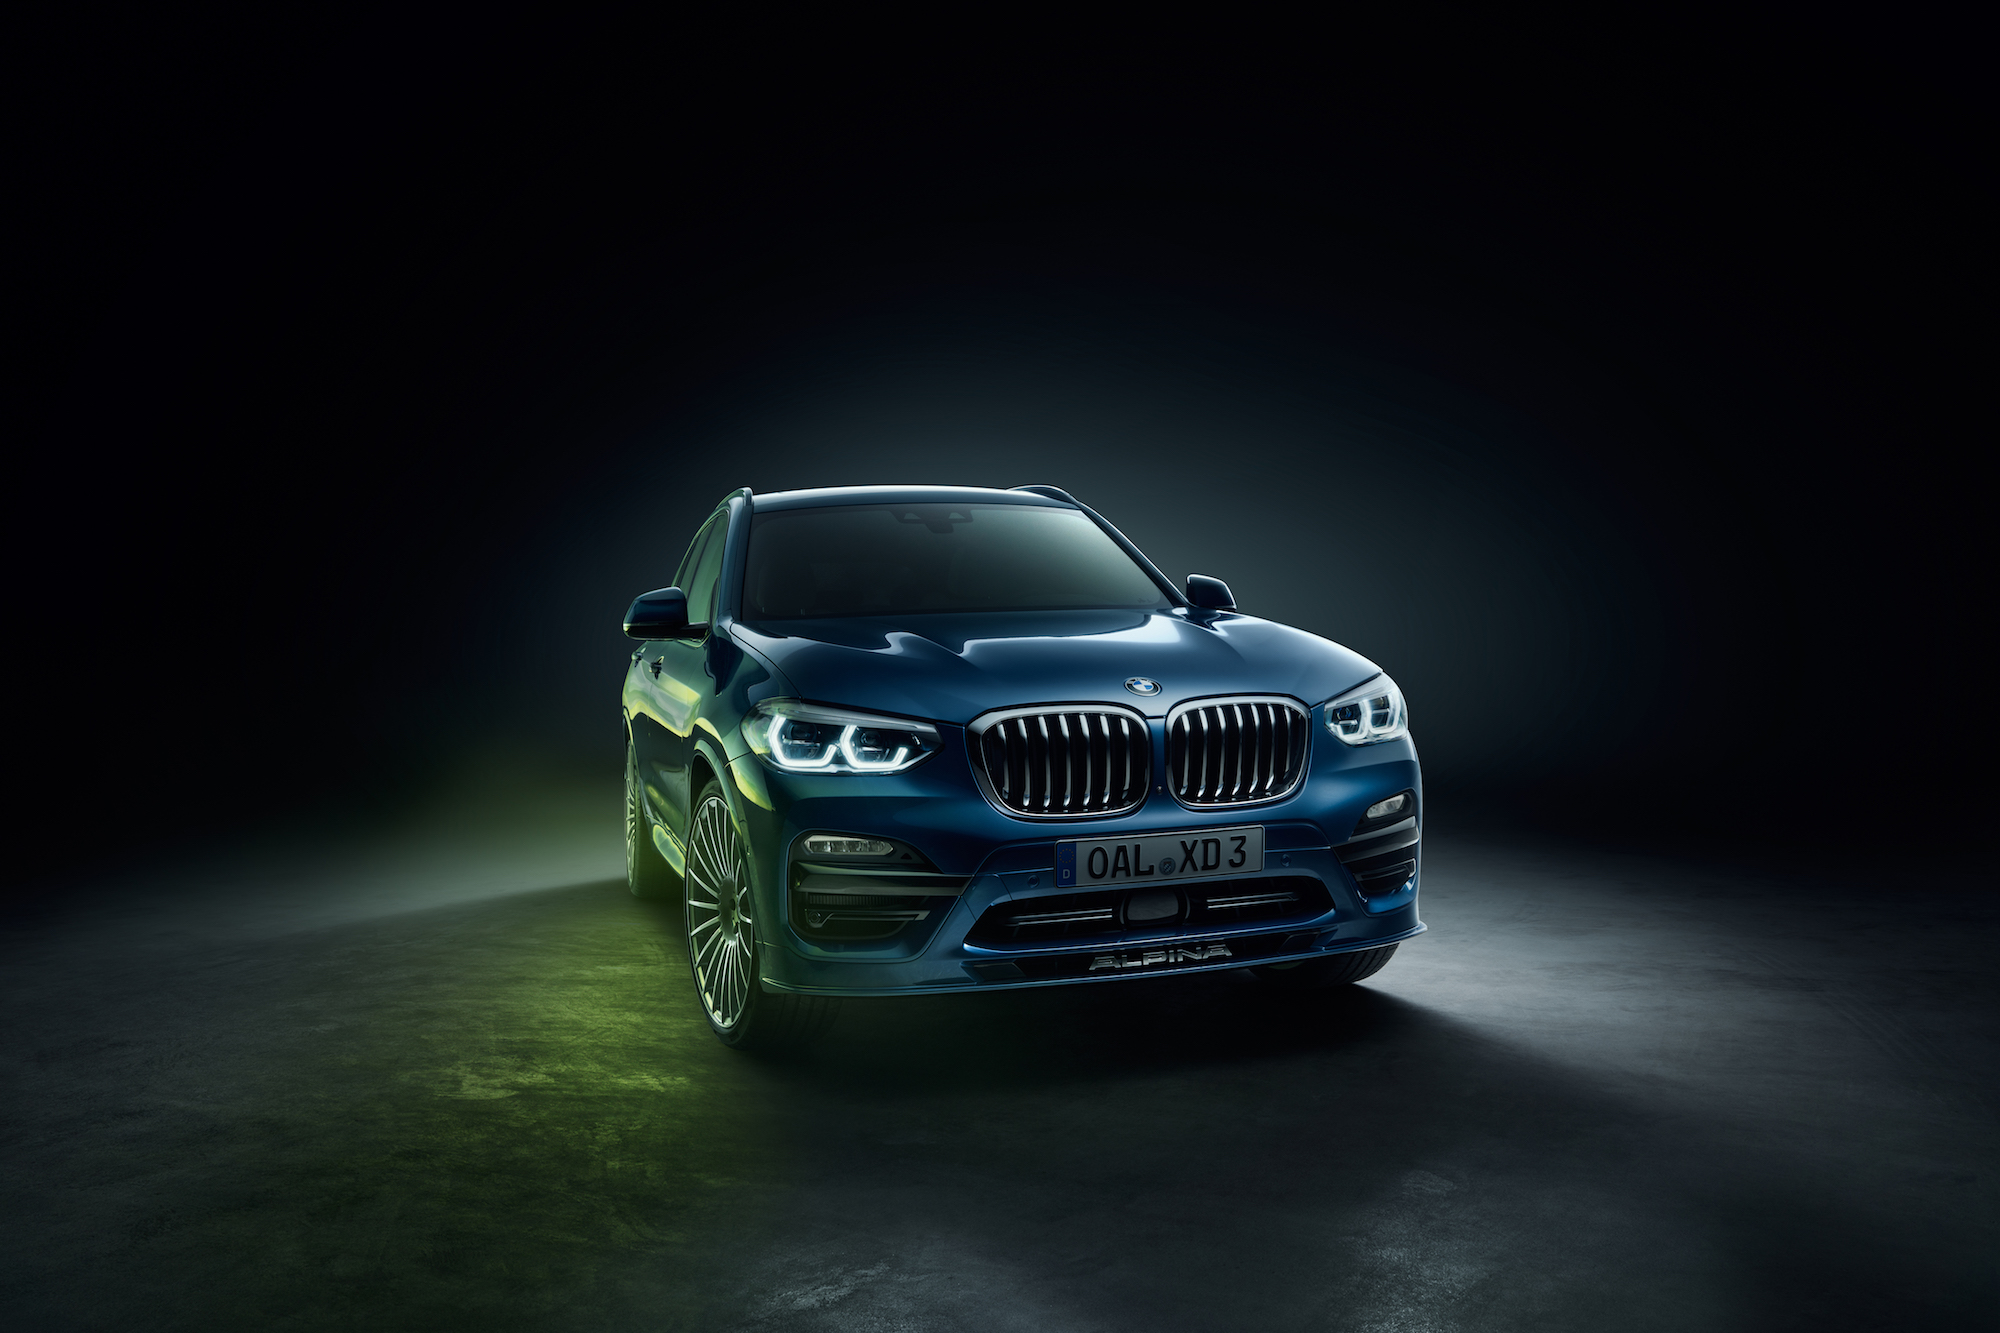 New Alpina XD3: pumped-up BMW X3 revealed